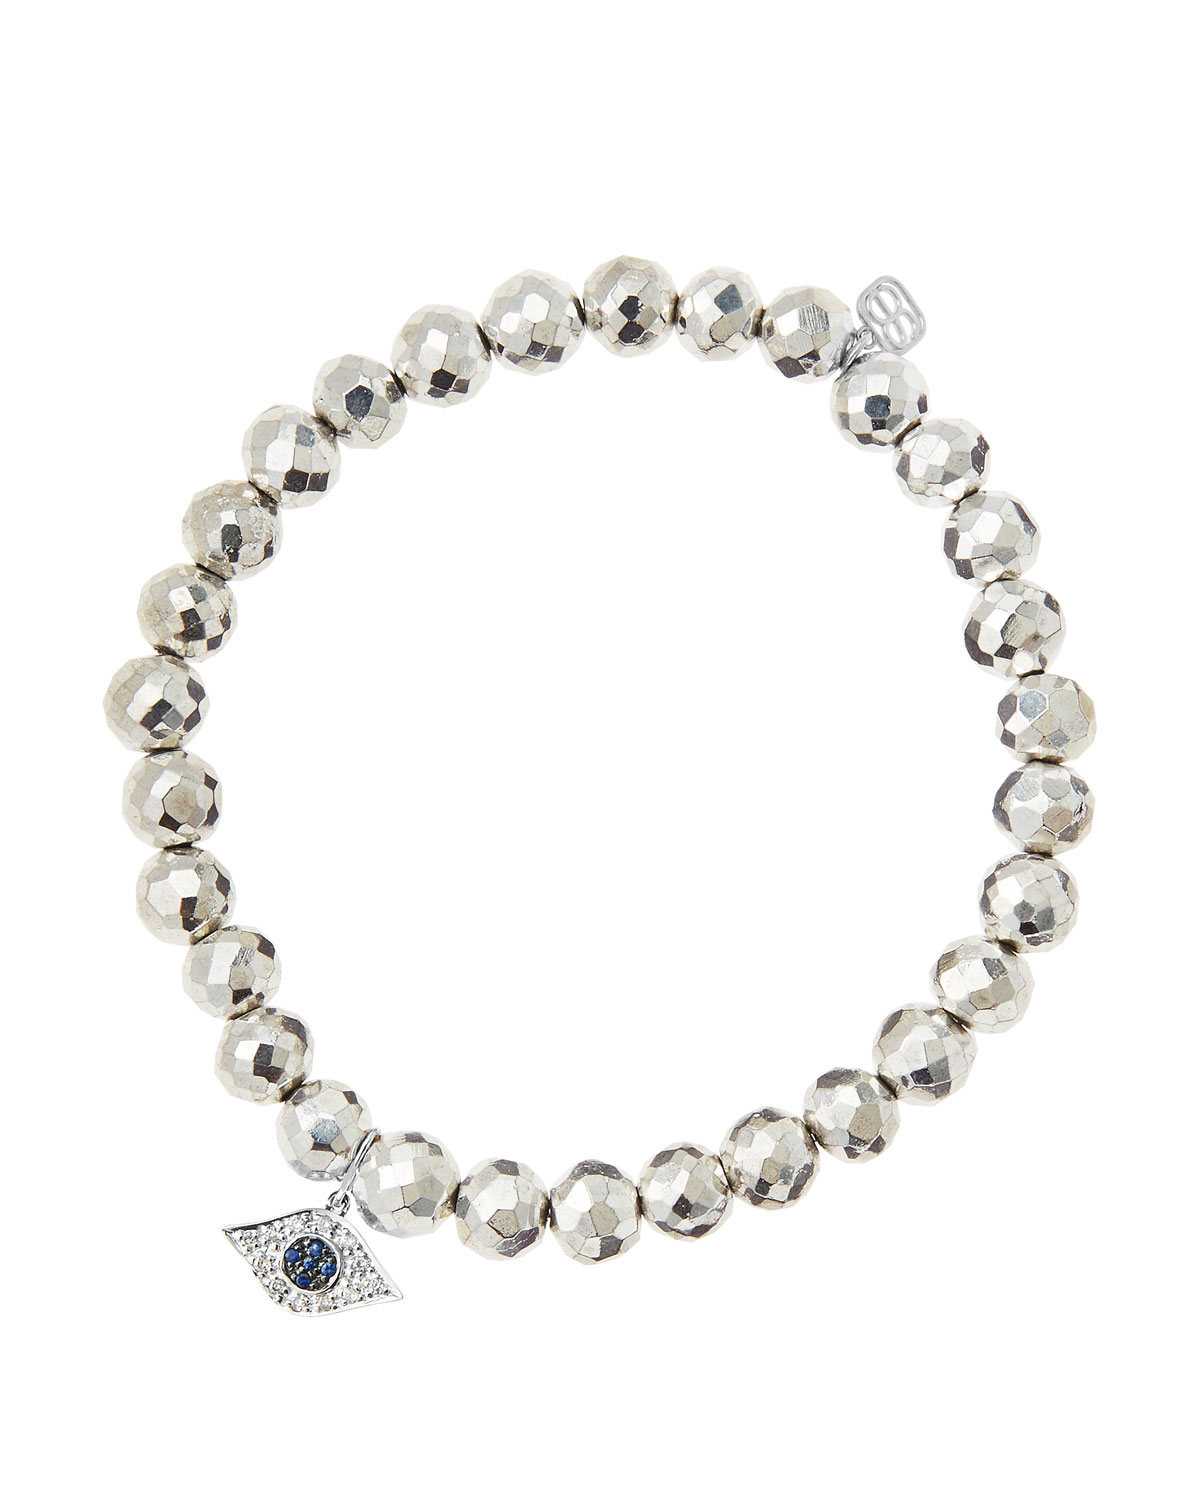 Sydney Evan 6mm Faceted Silver Pyrite Beaded Bracelet With